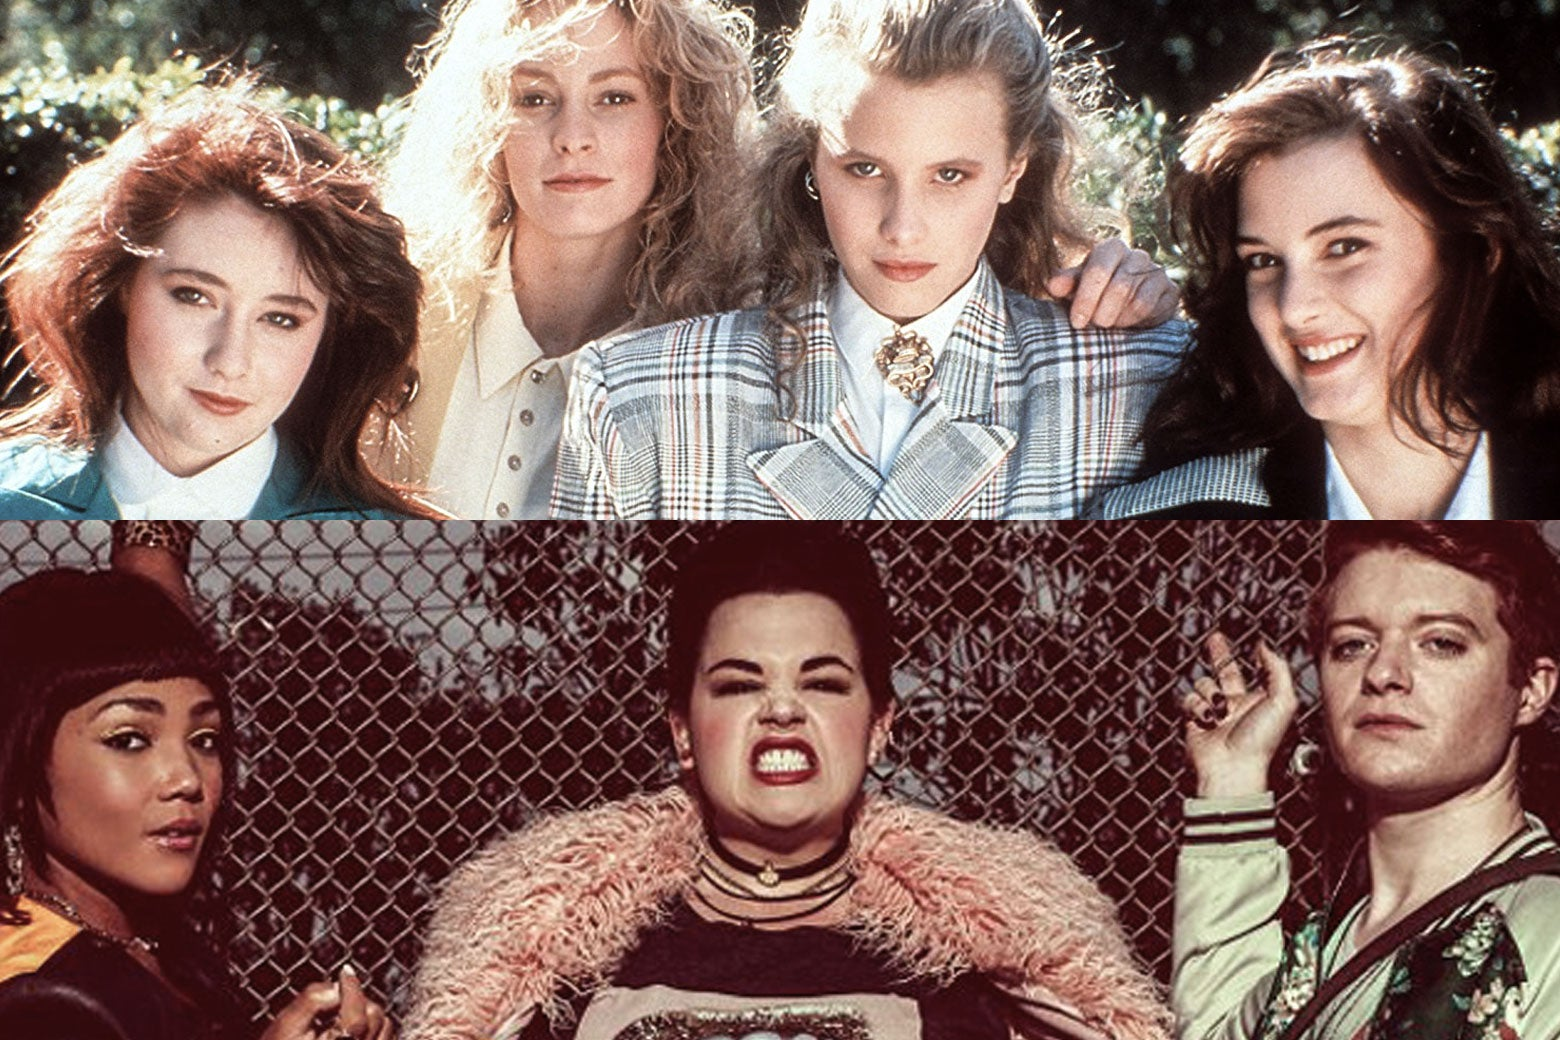 Top: The original Heathers. Bottom: The new Heathers.